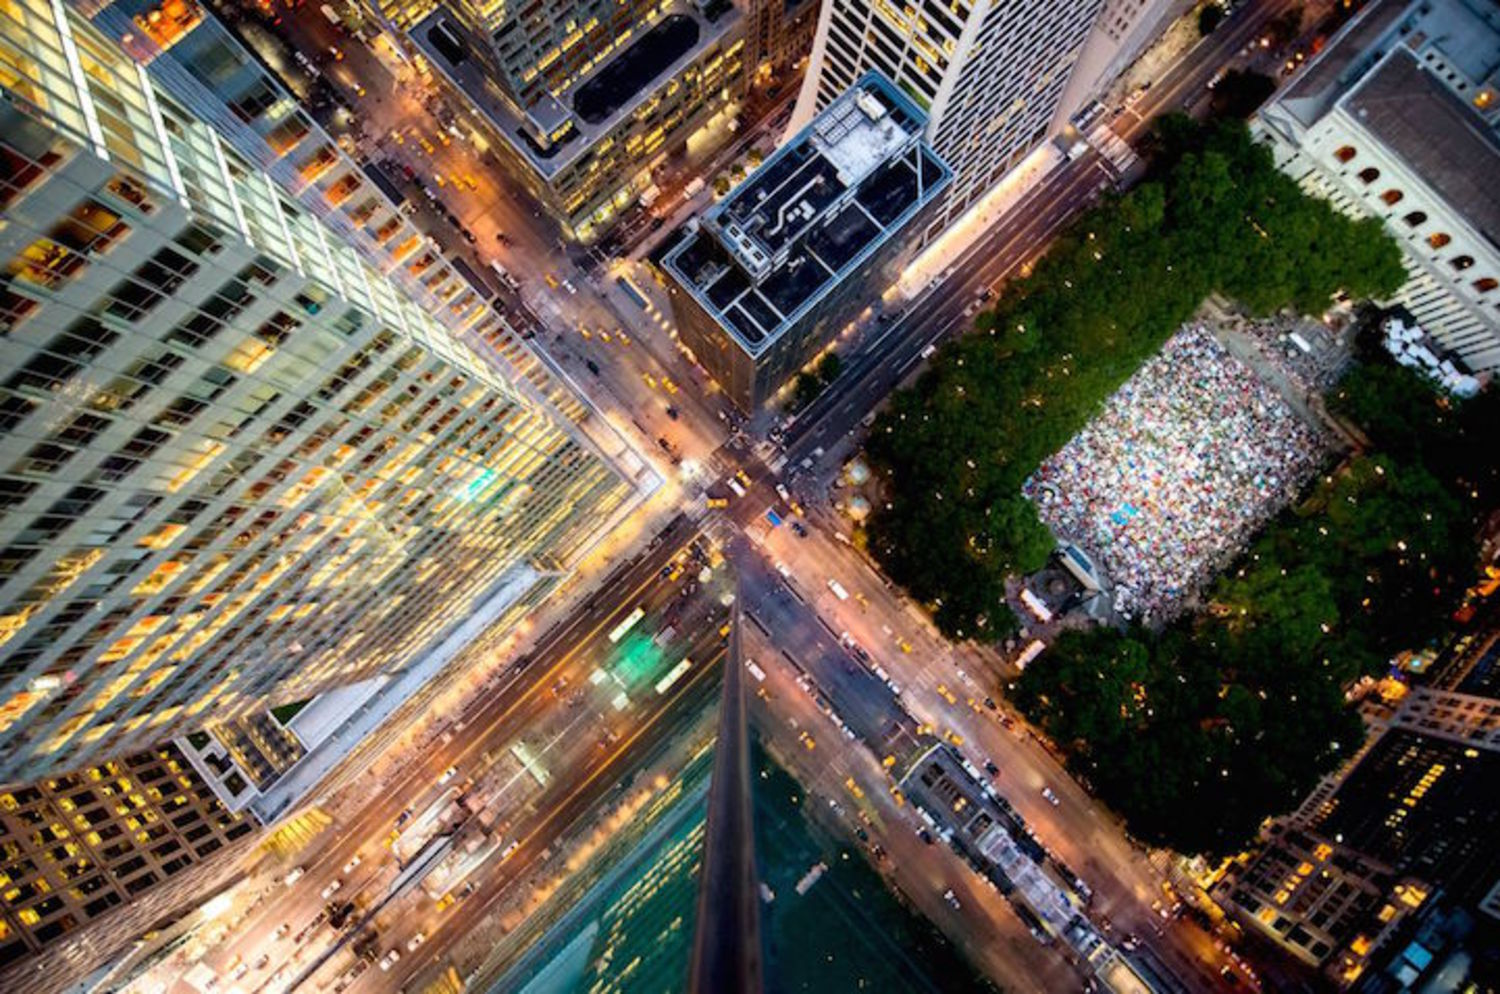 Vertigo-Inducing NYC Rooftop Photo Taken from Over 600 Feet Above Ground